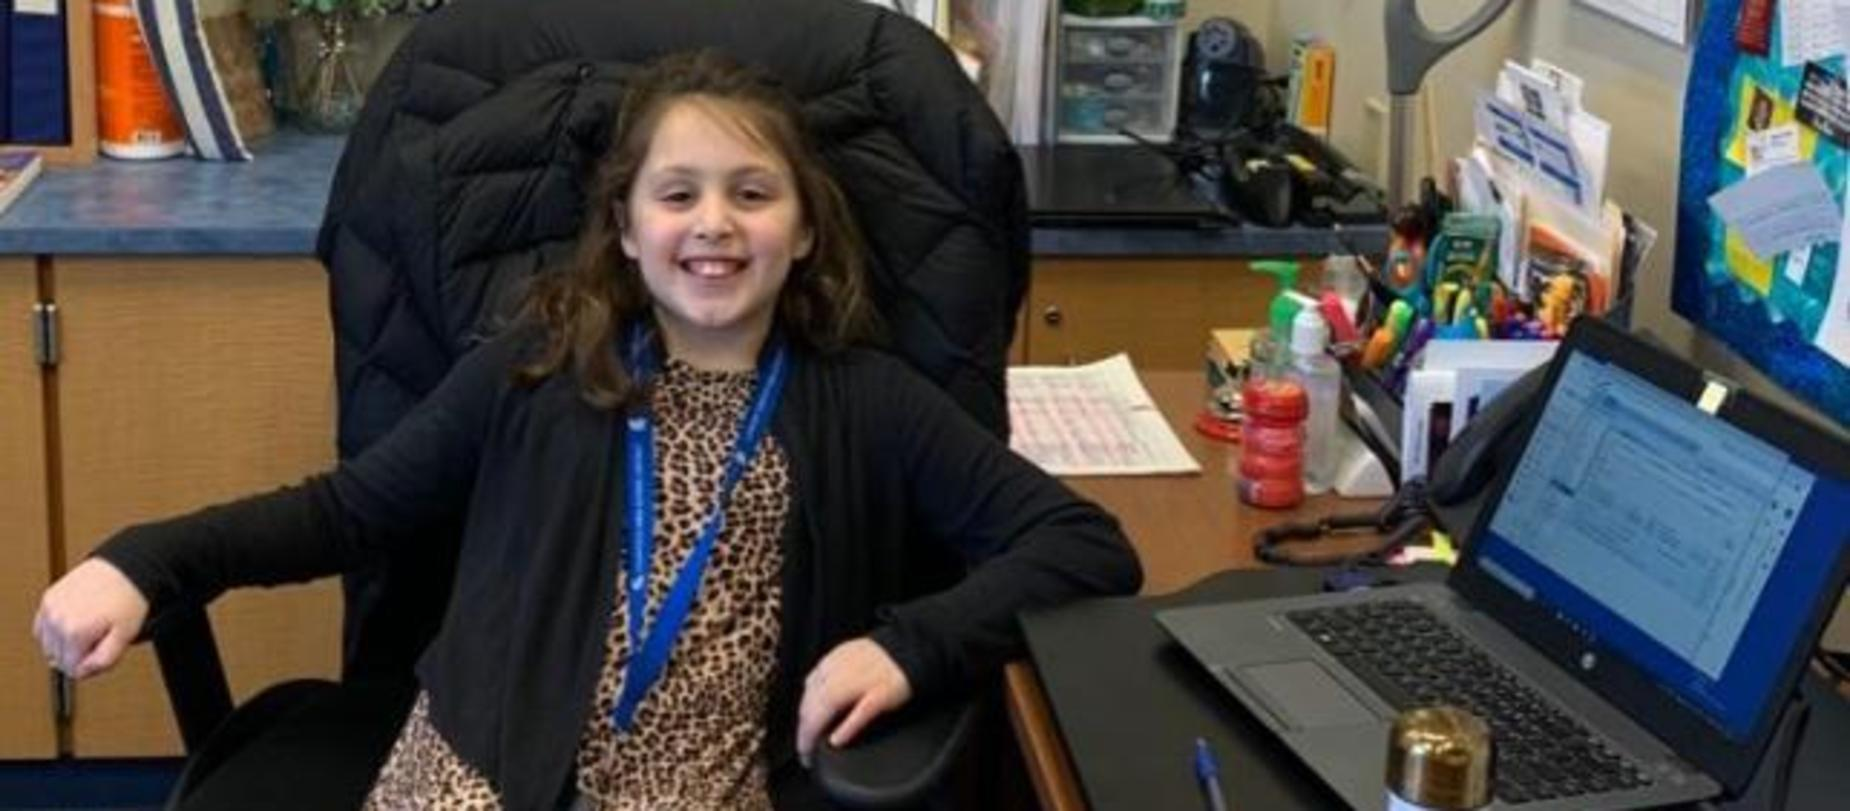 Student being principal for the day